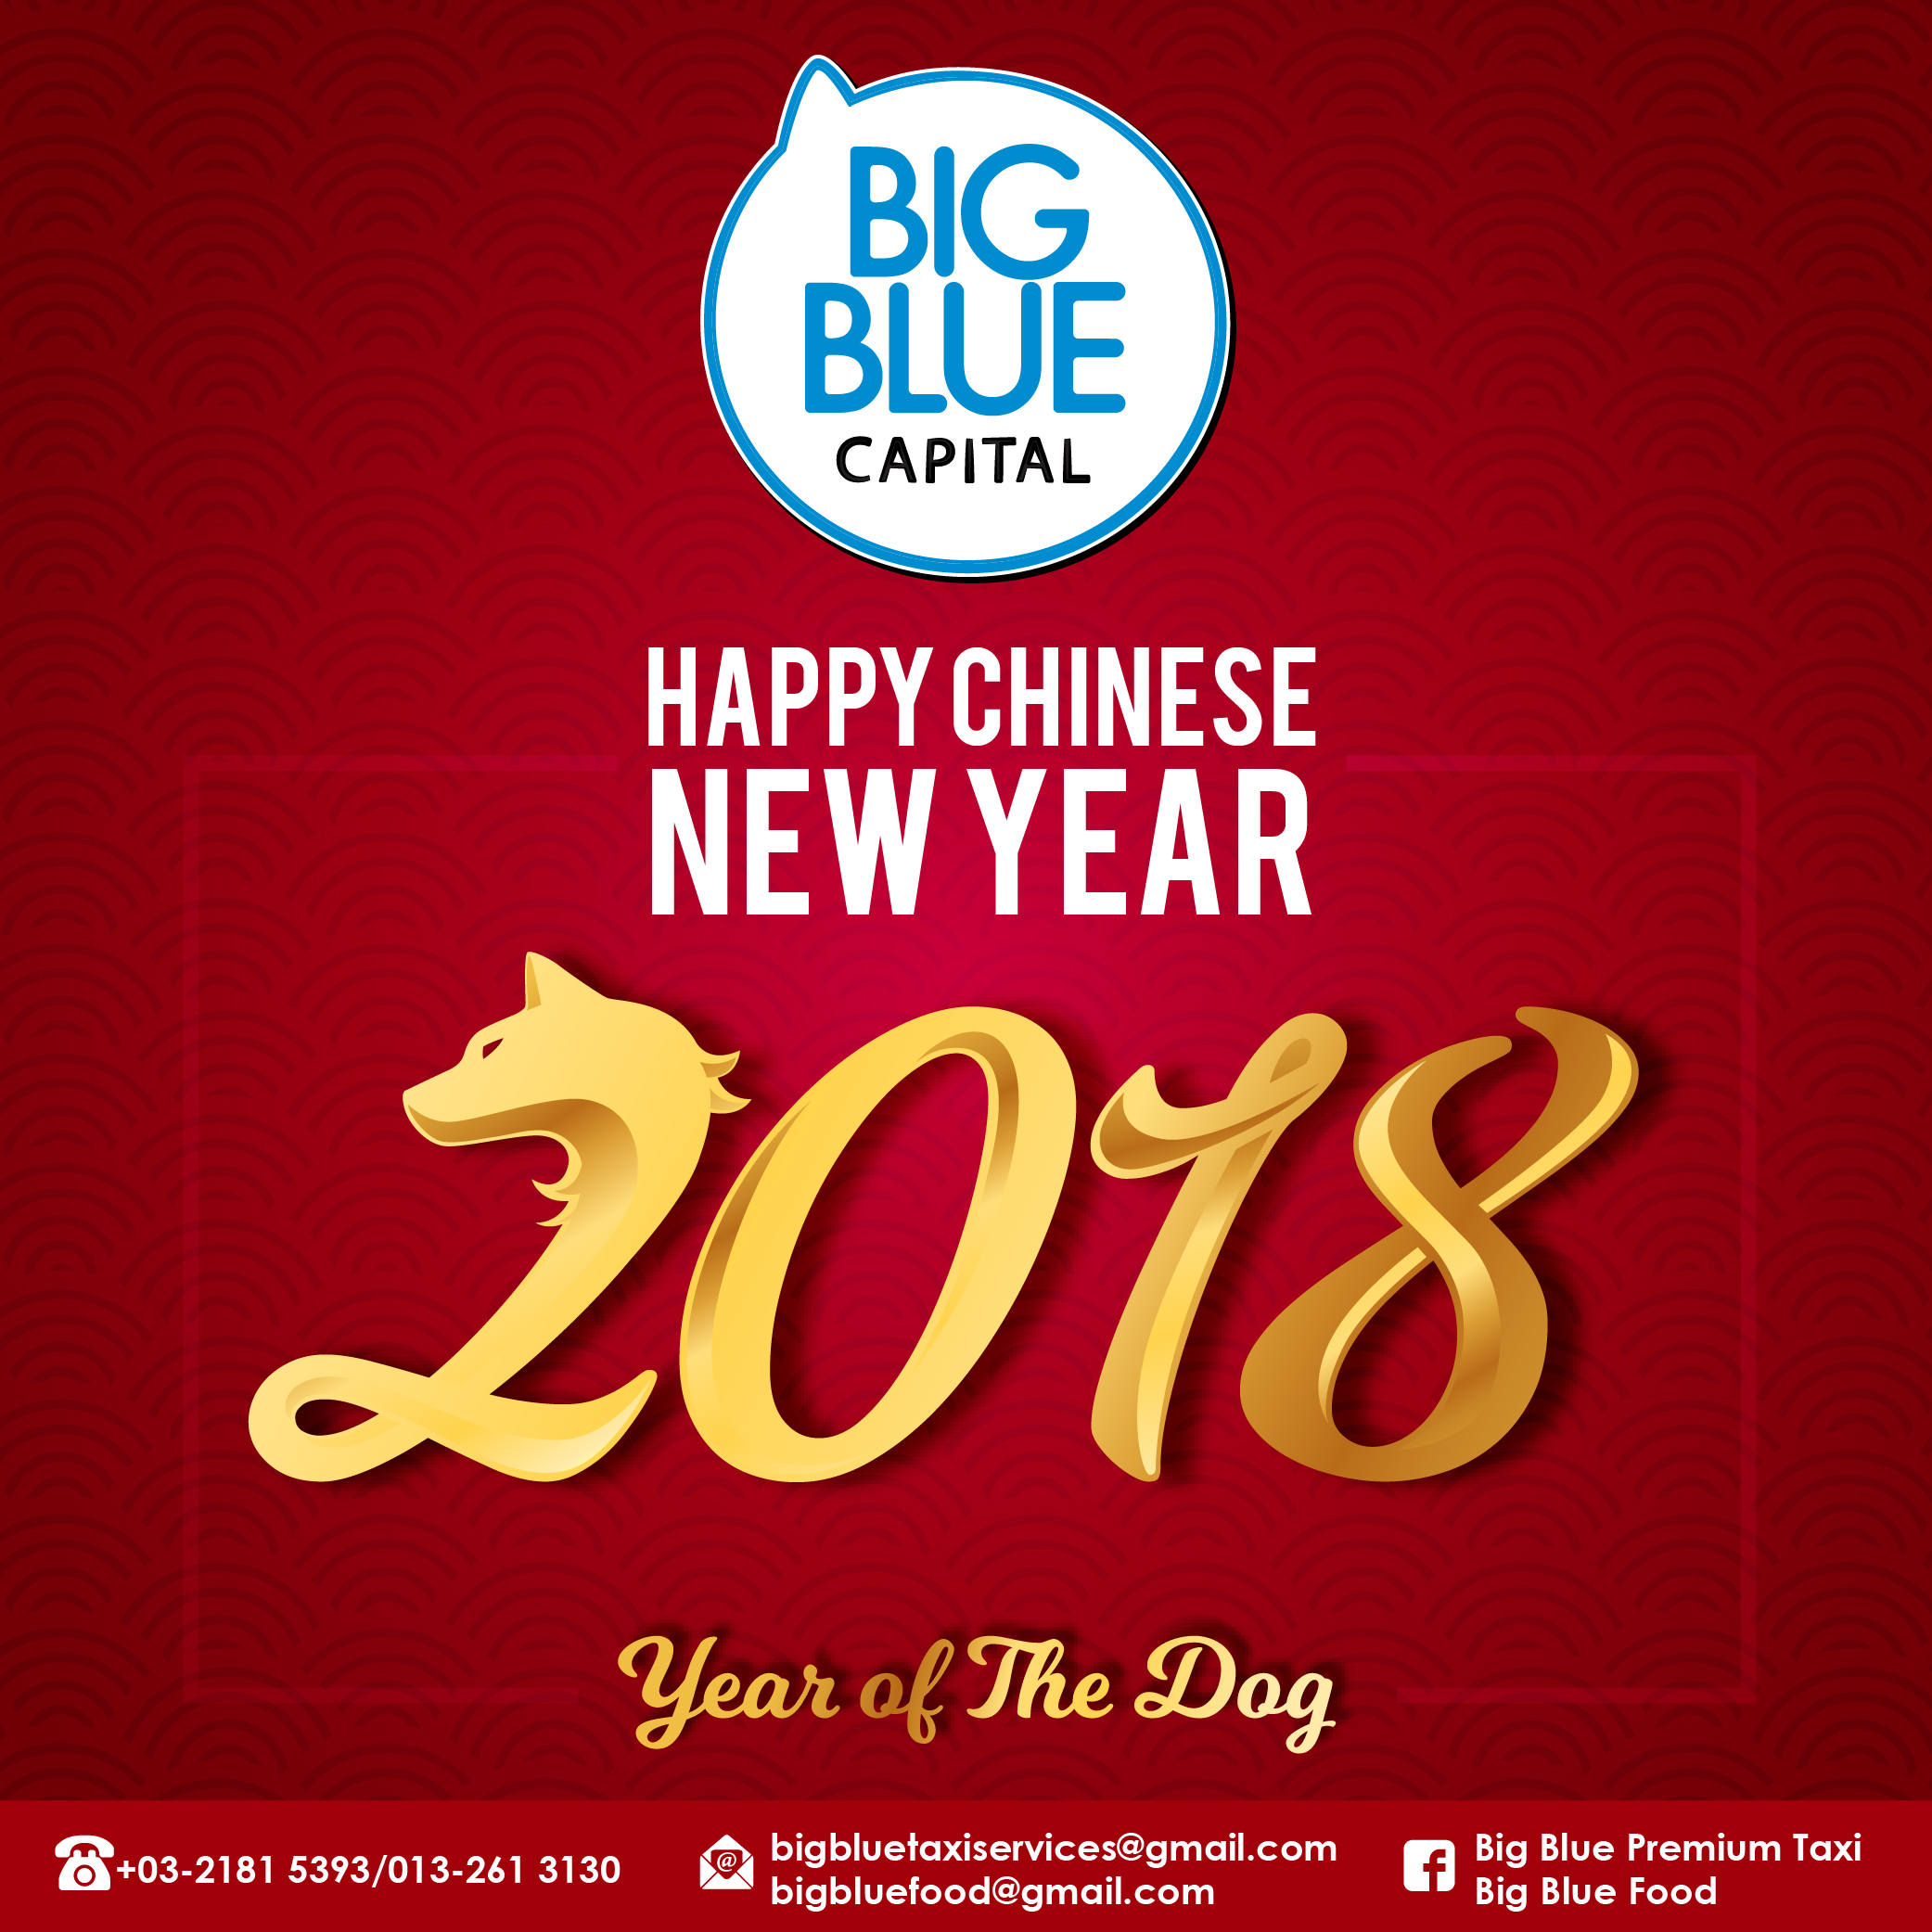 Happy Chinese New Year 2018 (Big Blue Capital)